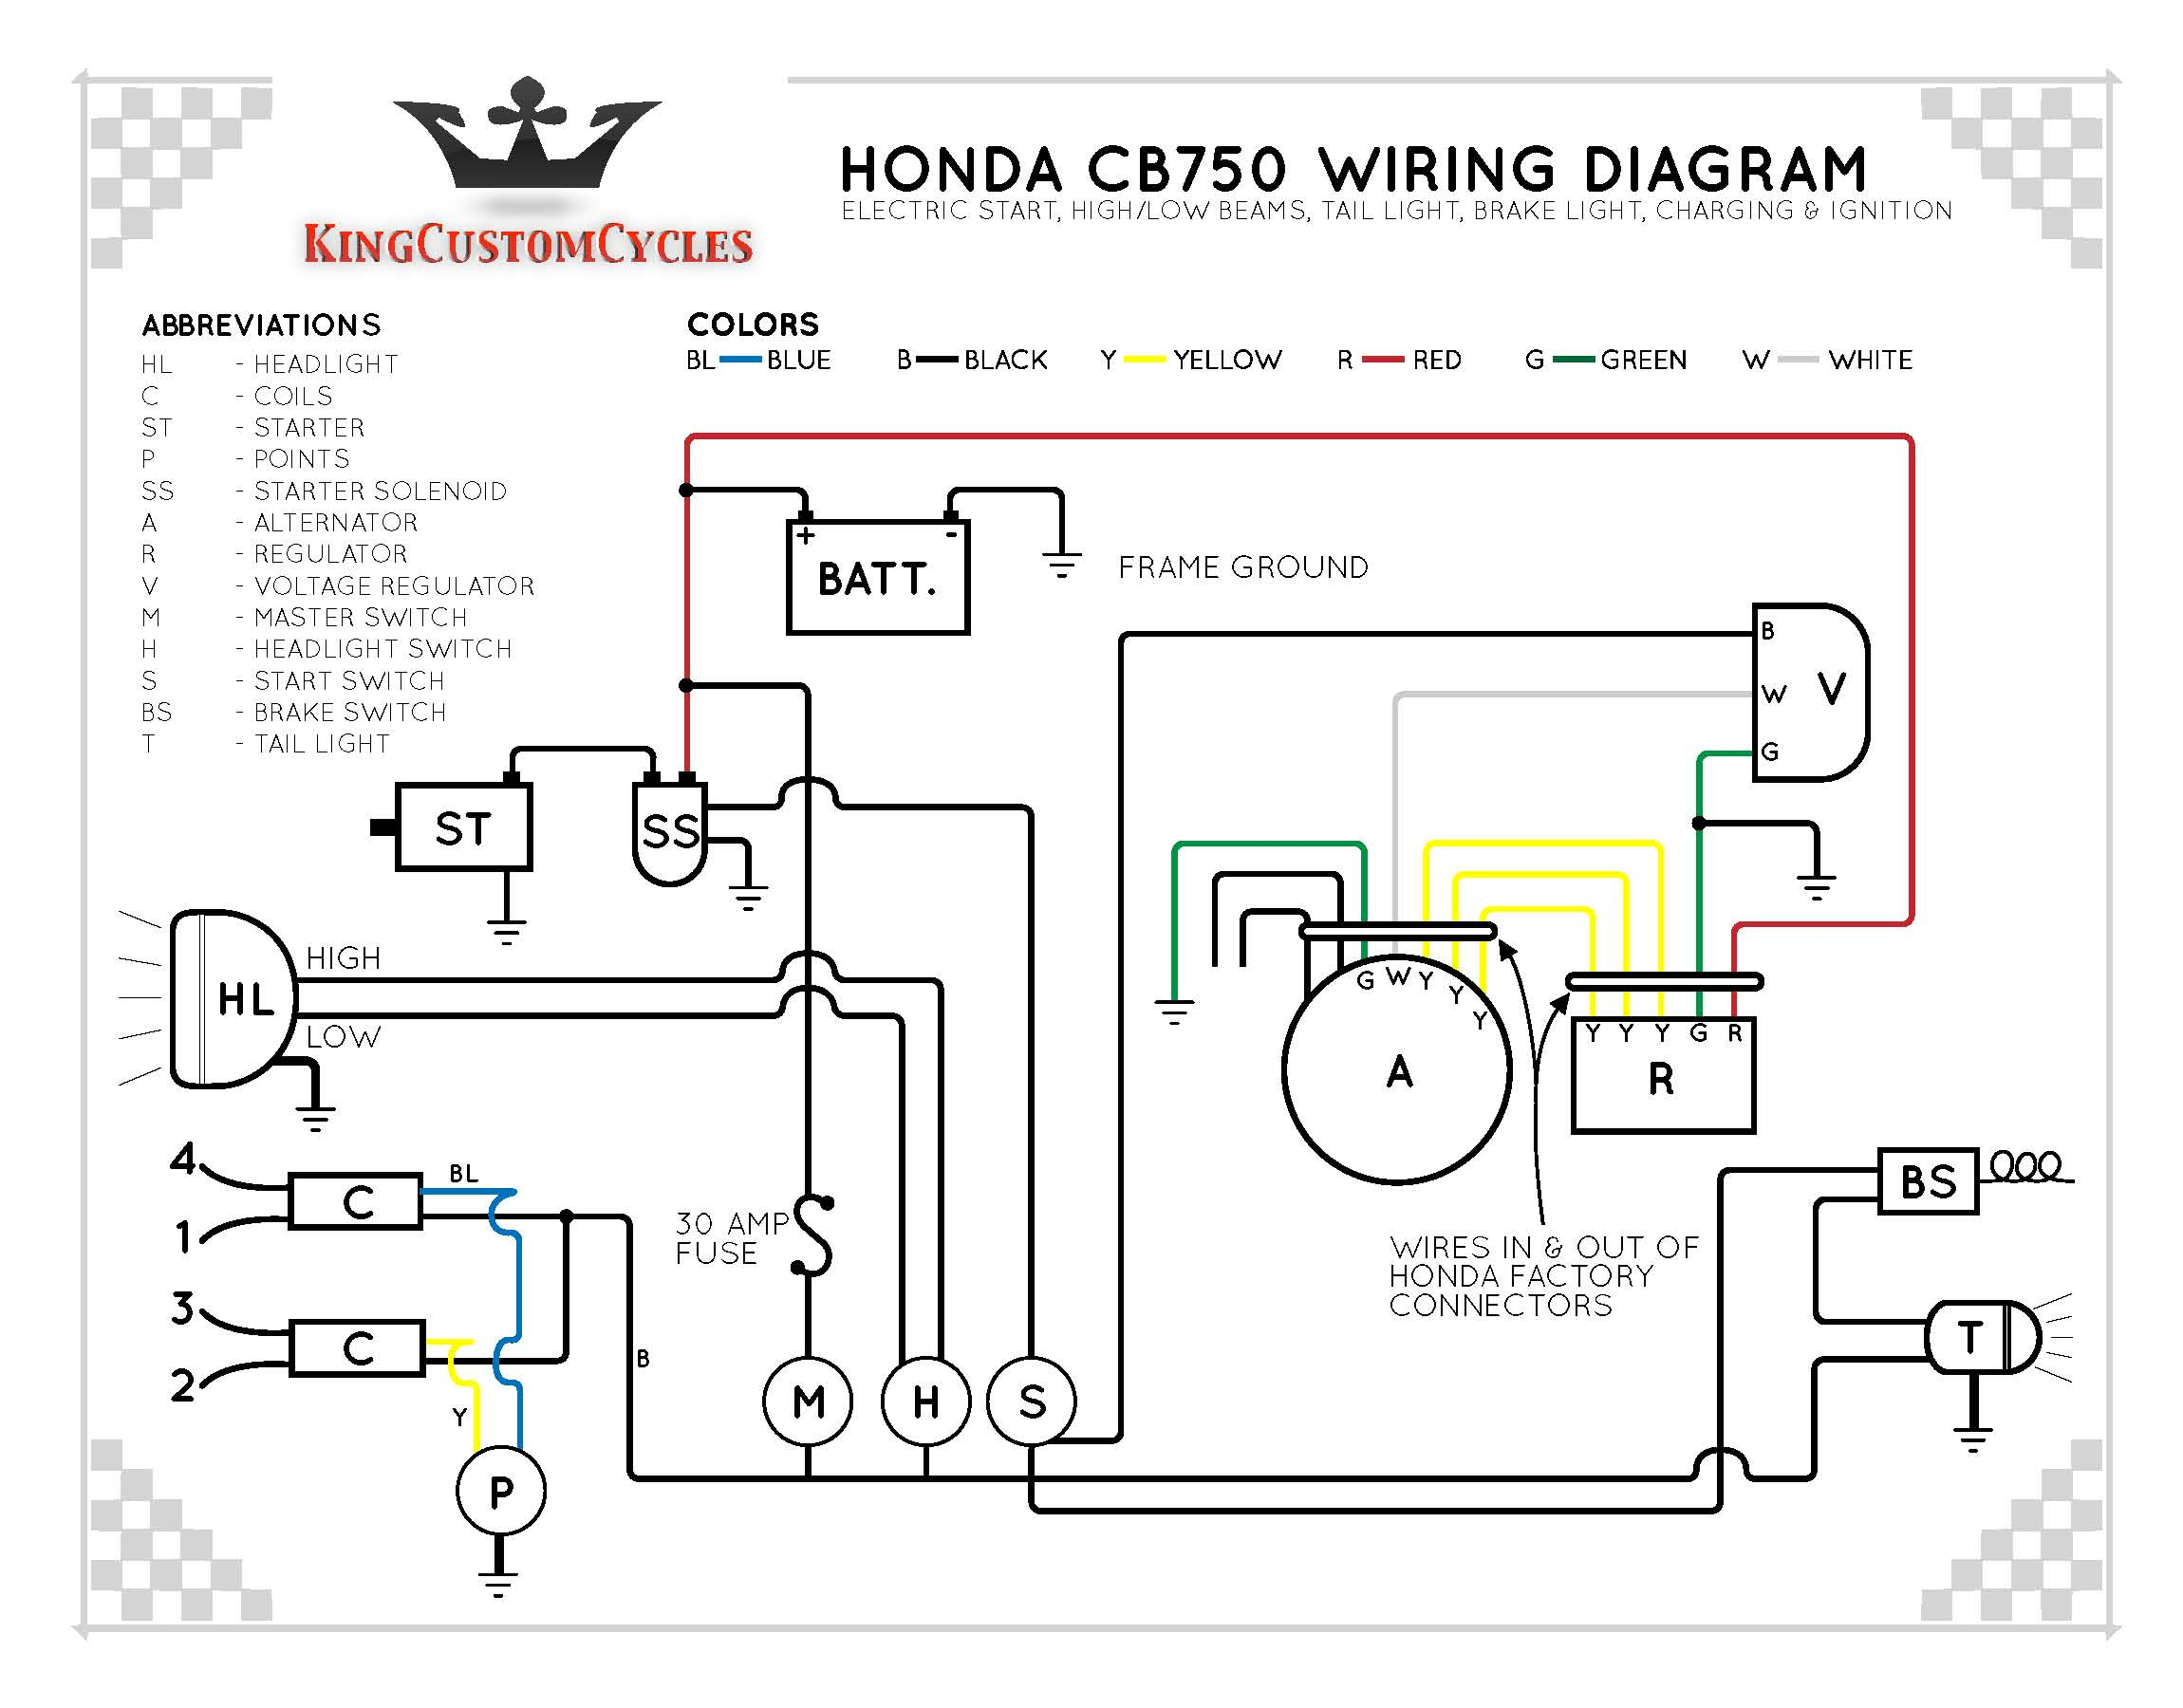 Cb750 Wiring Diagram Chopper - Great Installation Of Wiring Diagram • - Cb750 Wiring Diagram